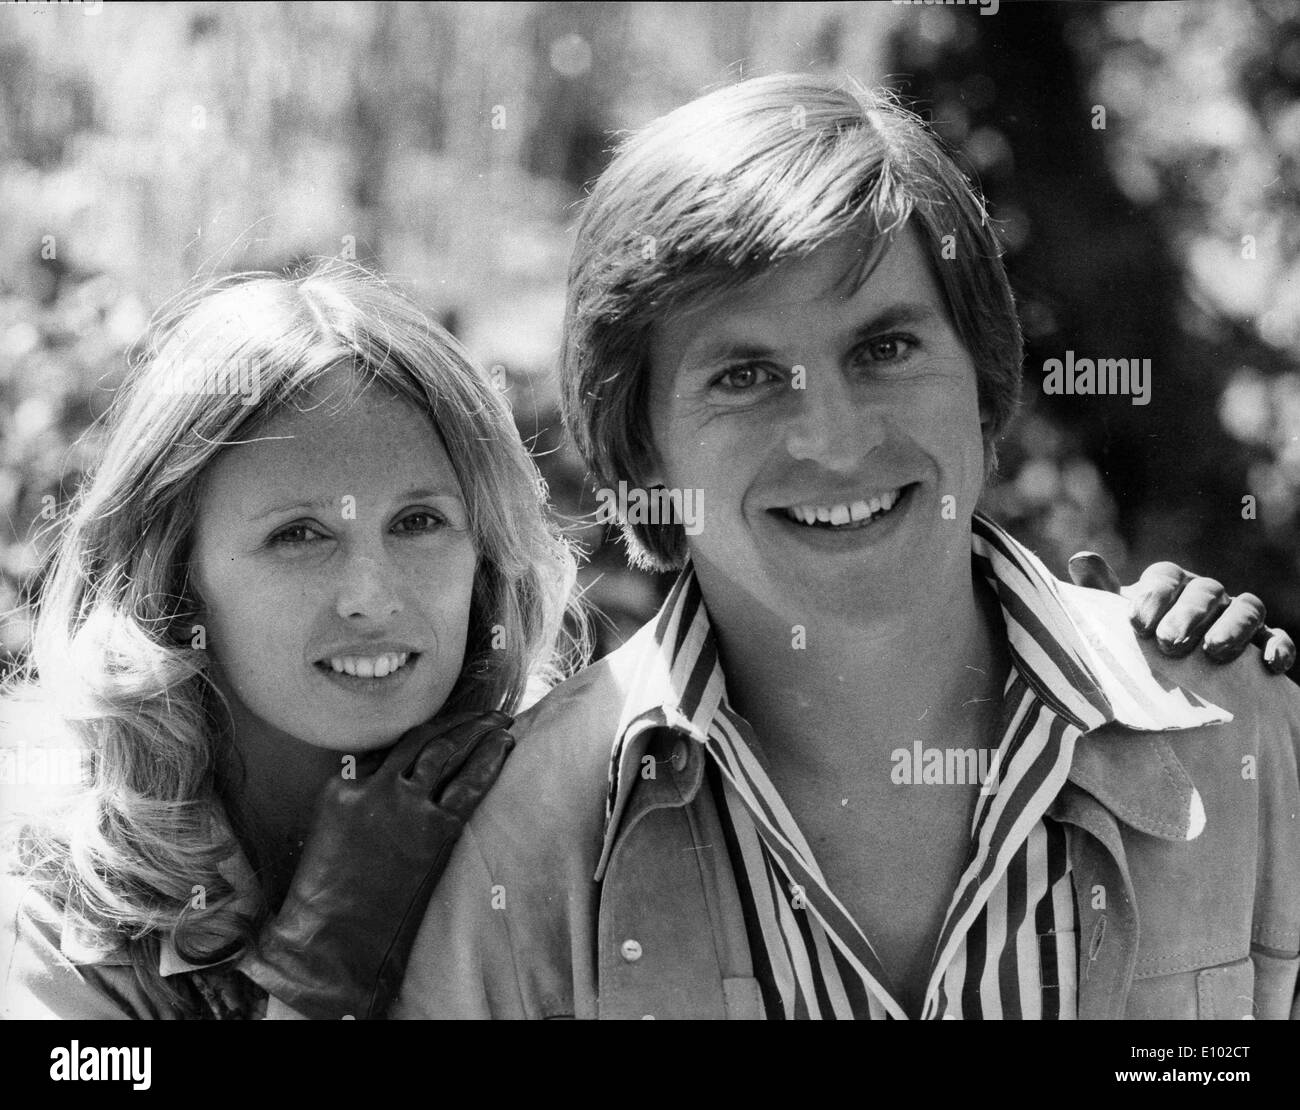 ALAN PRICE is an English musician, best known as the original keyboardist for  British band The Animals. Actress Jill Townsend. - Stock Image